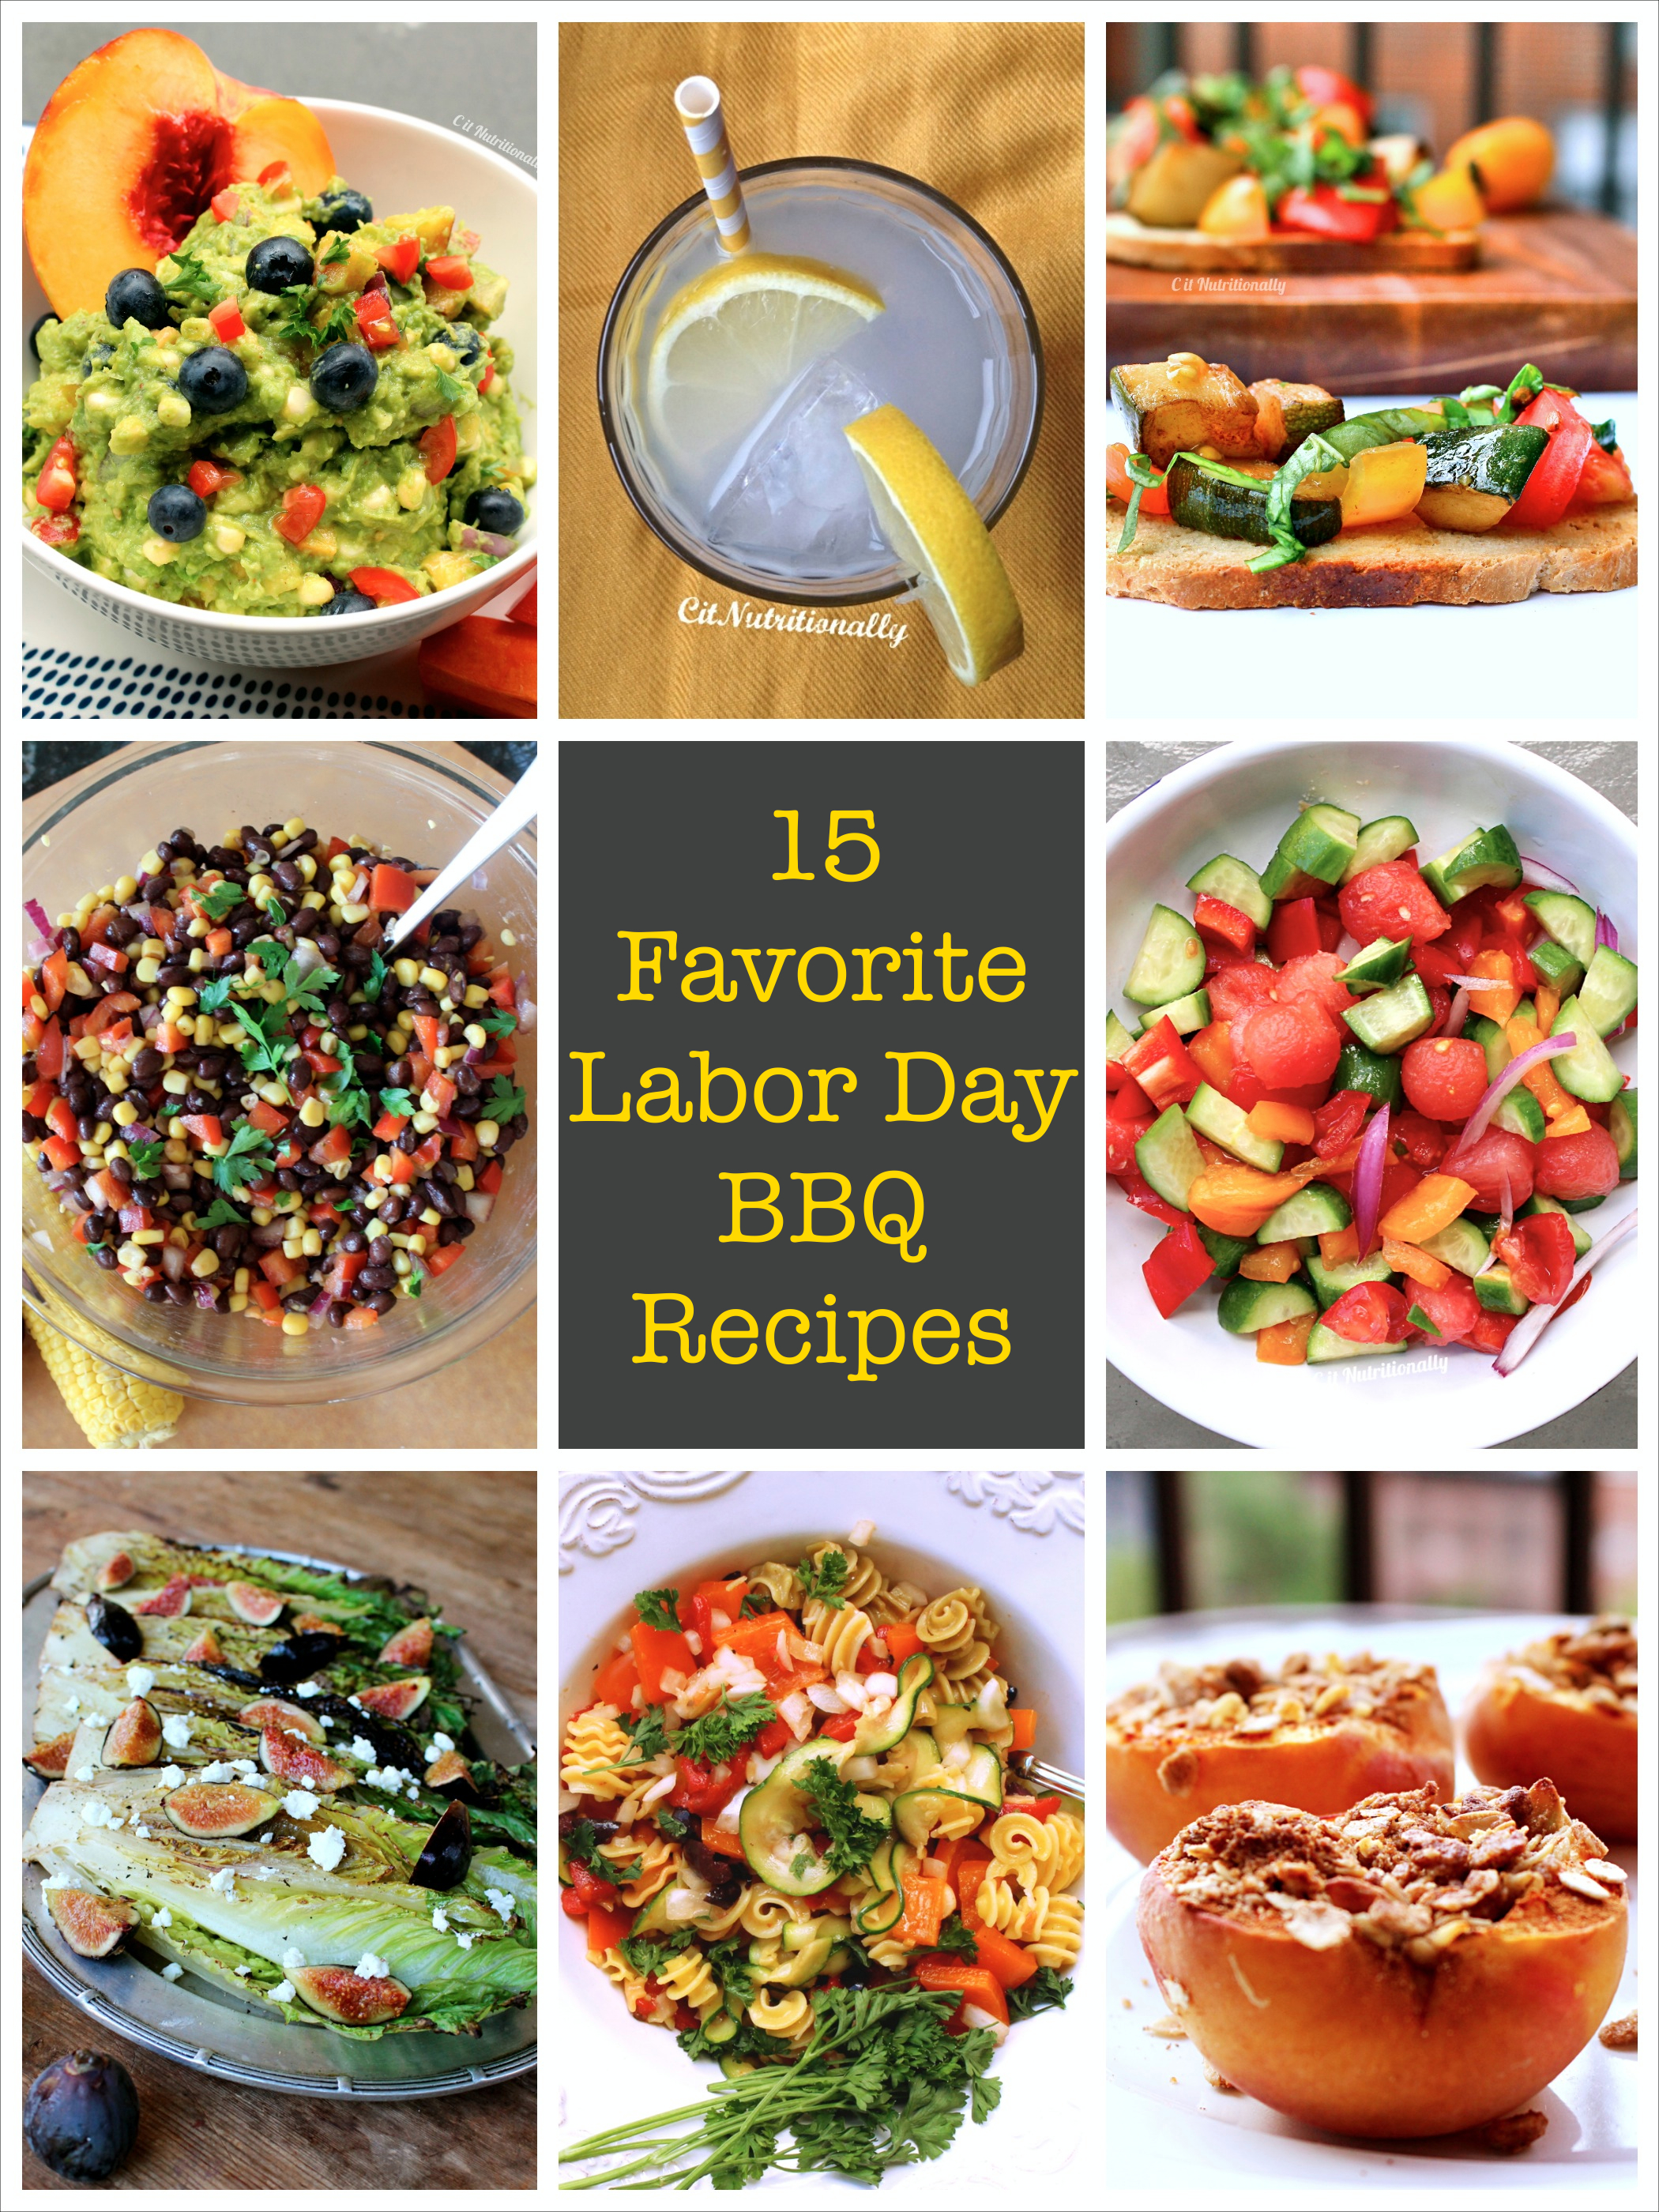 My 15 Favorite Labor Day BBQ Recipes